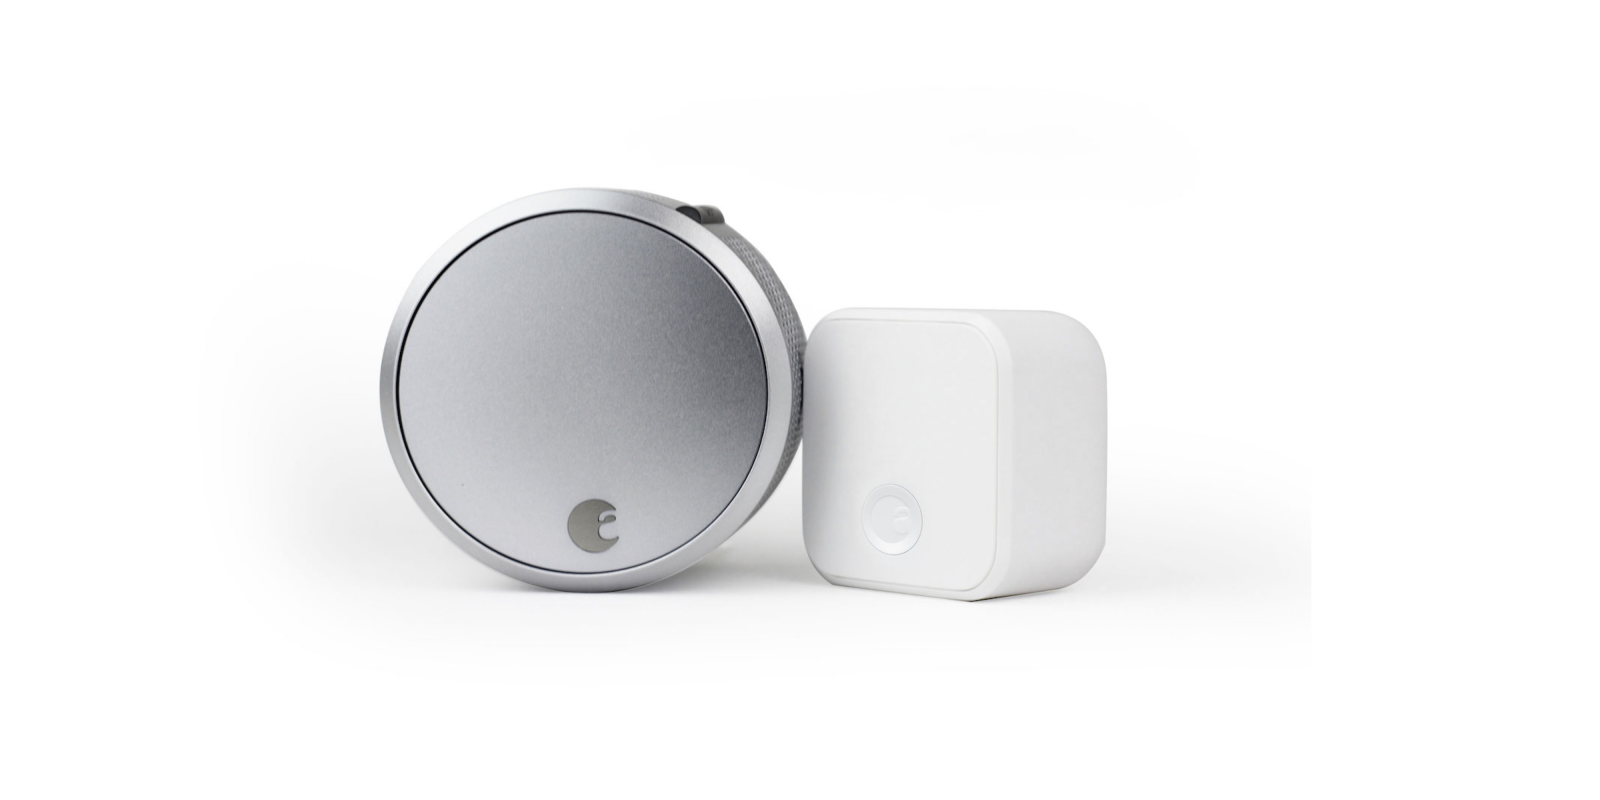 August Offers Its Smart Lock Pro Connect Homekit Lock